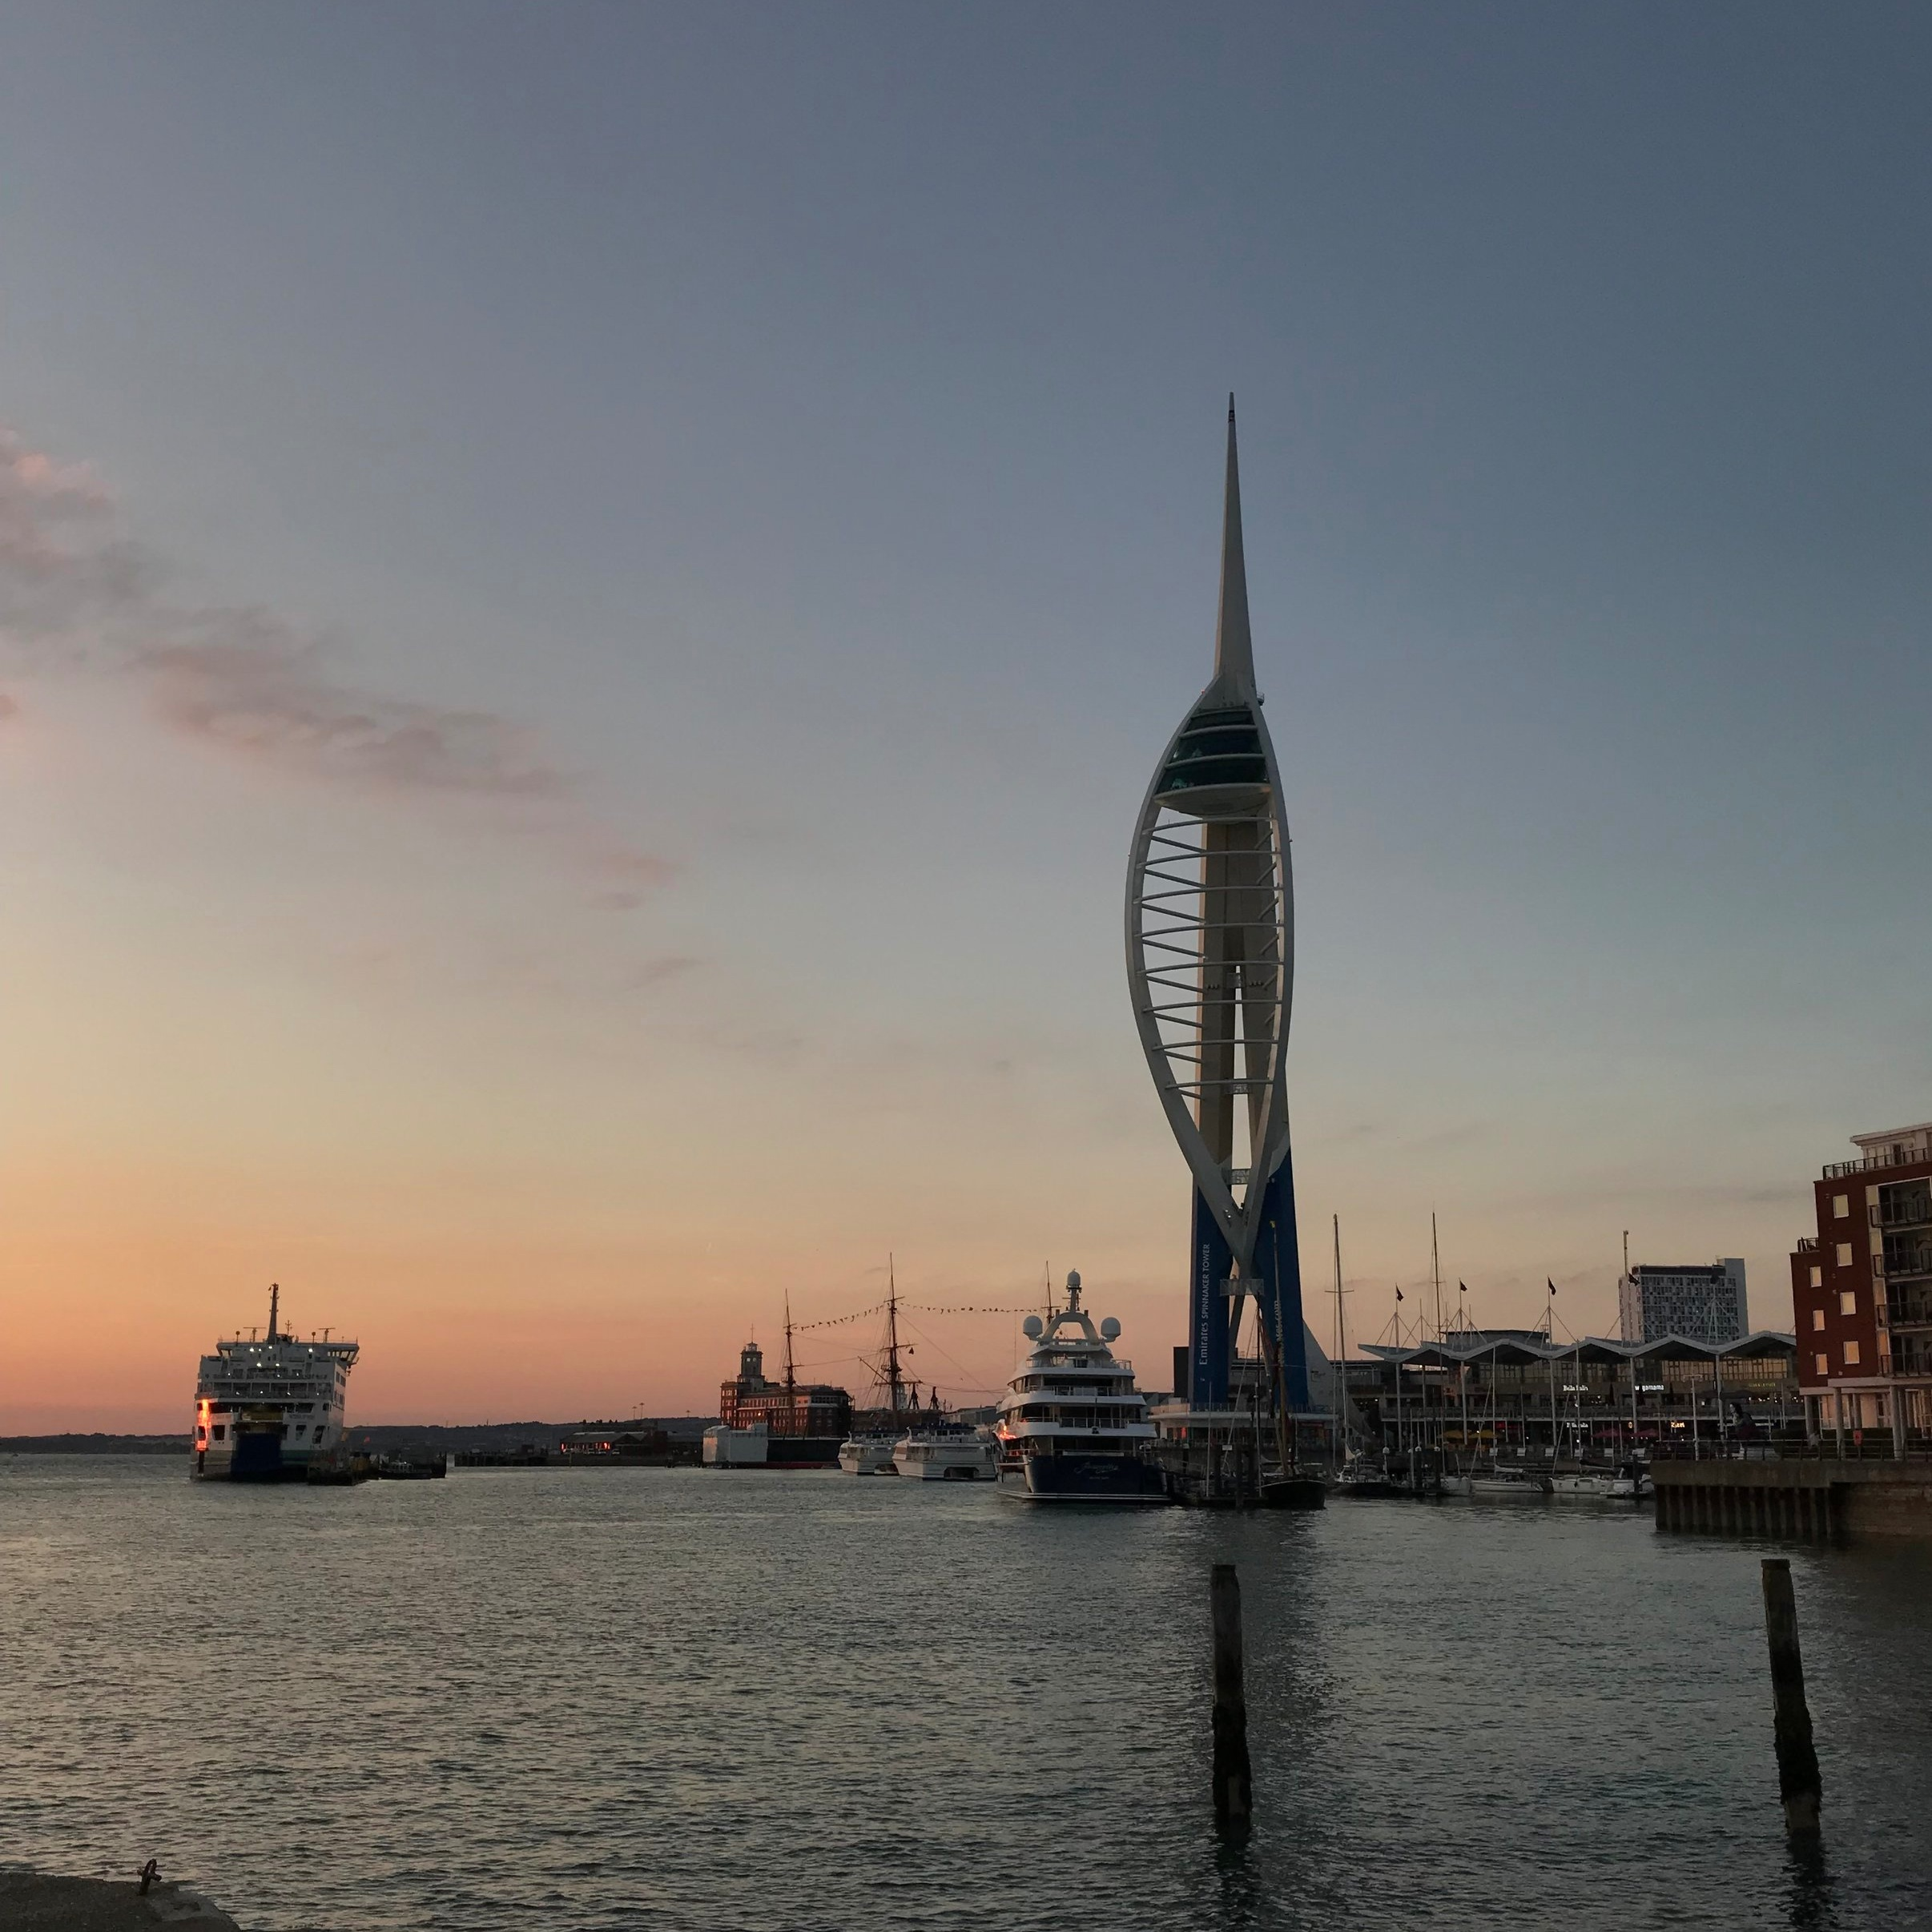 Emirates Spinnaker Tower Nominated for British Travel Award